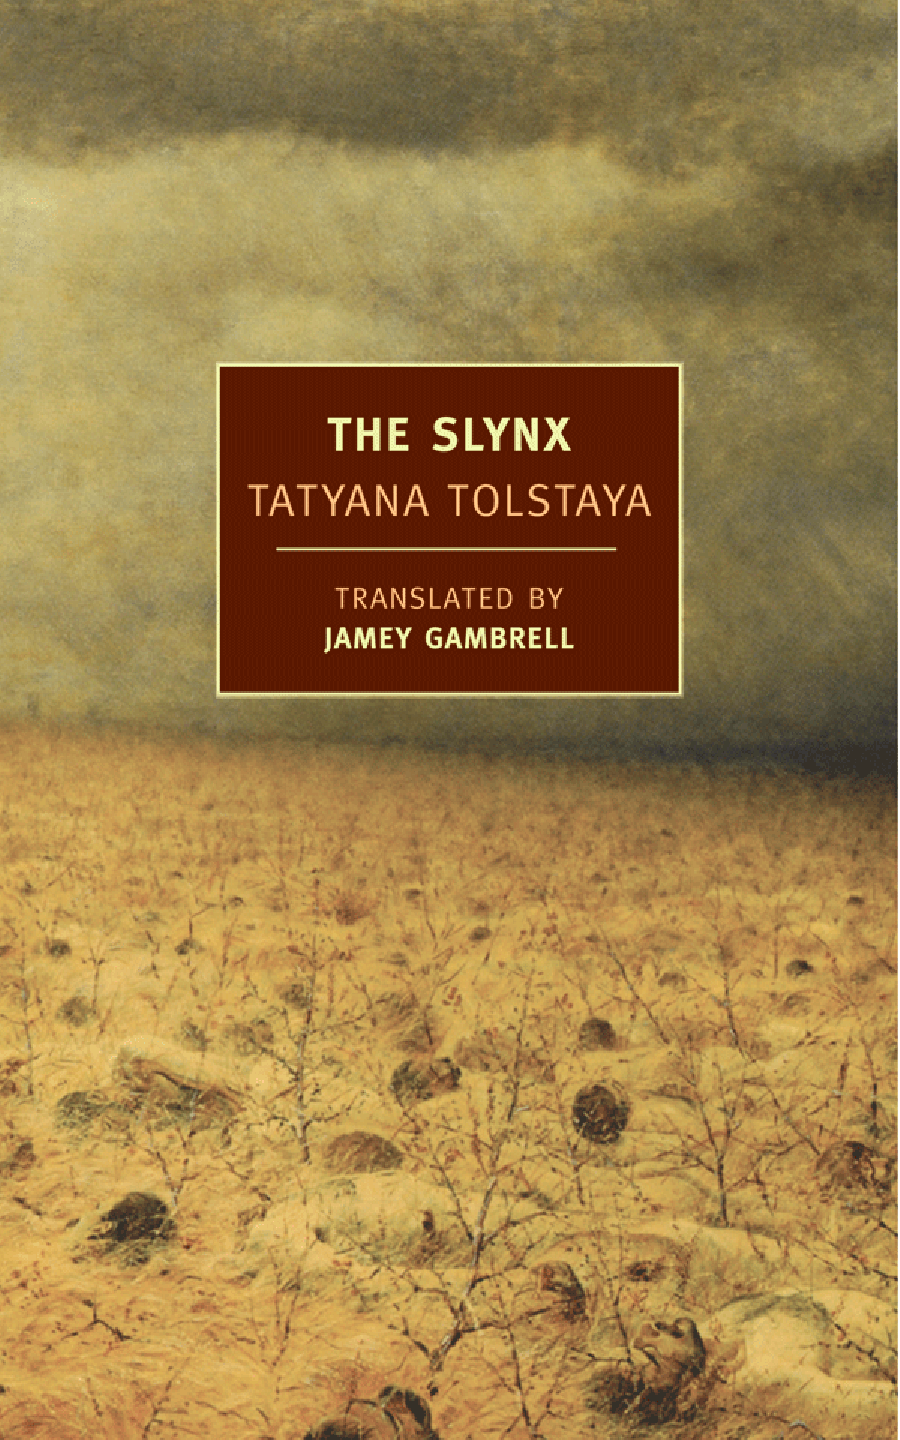 The Slynx - Tatyan Tolstoya